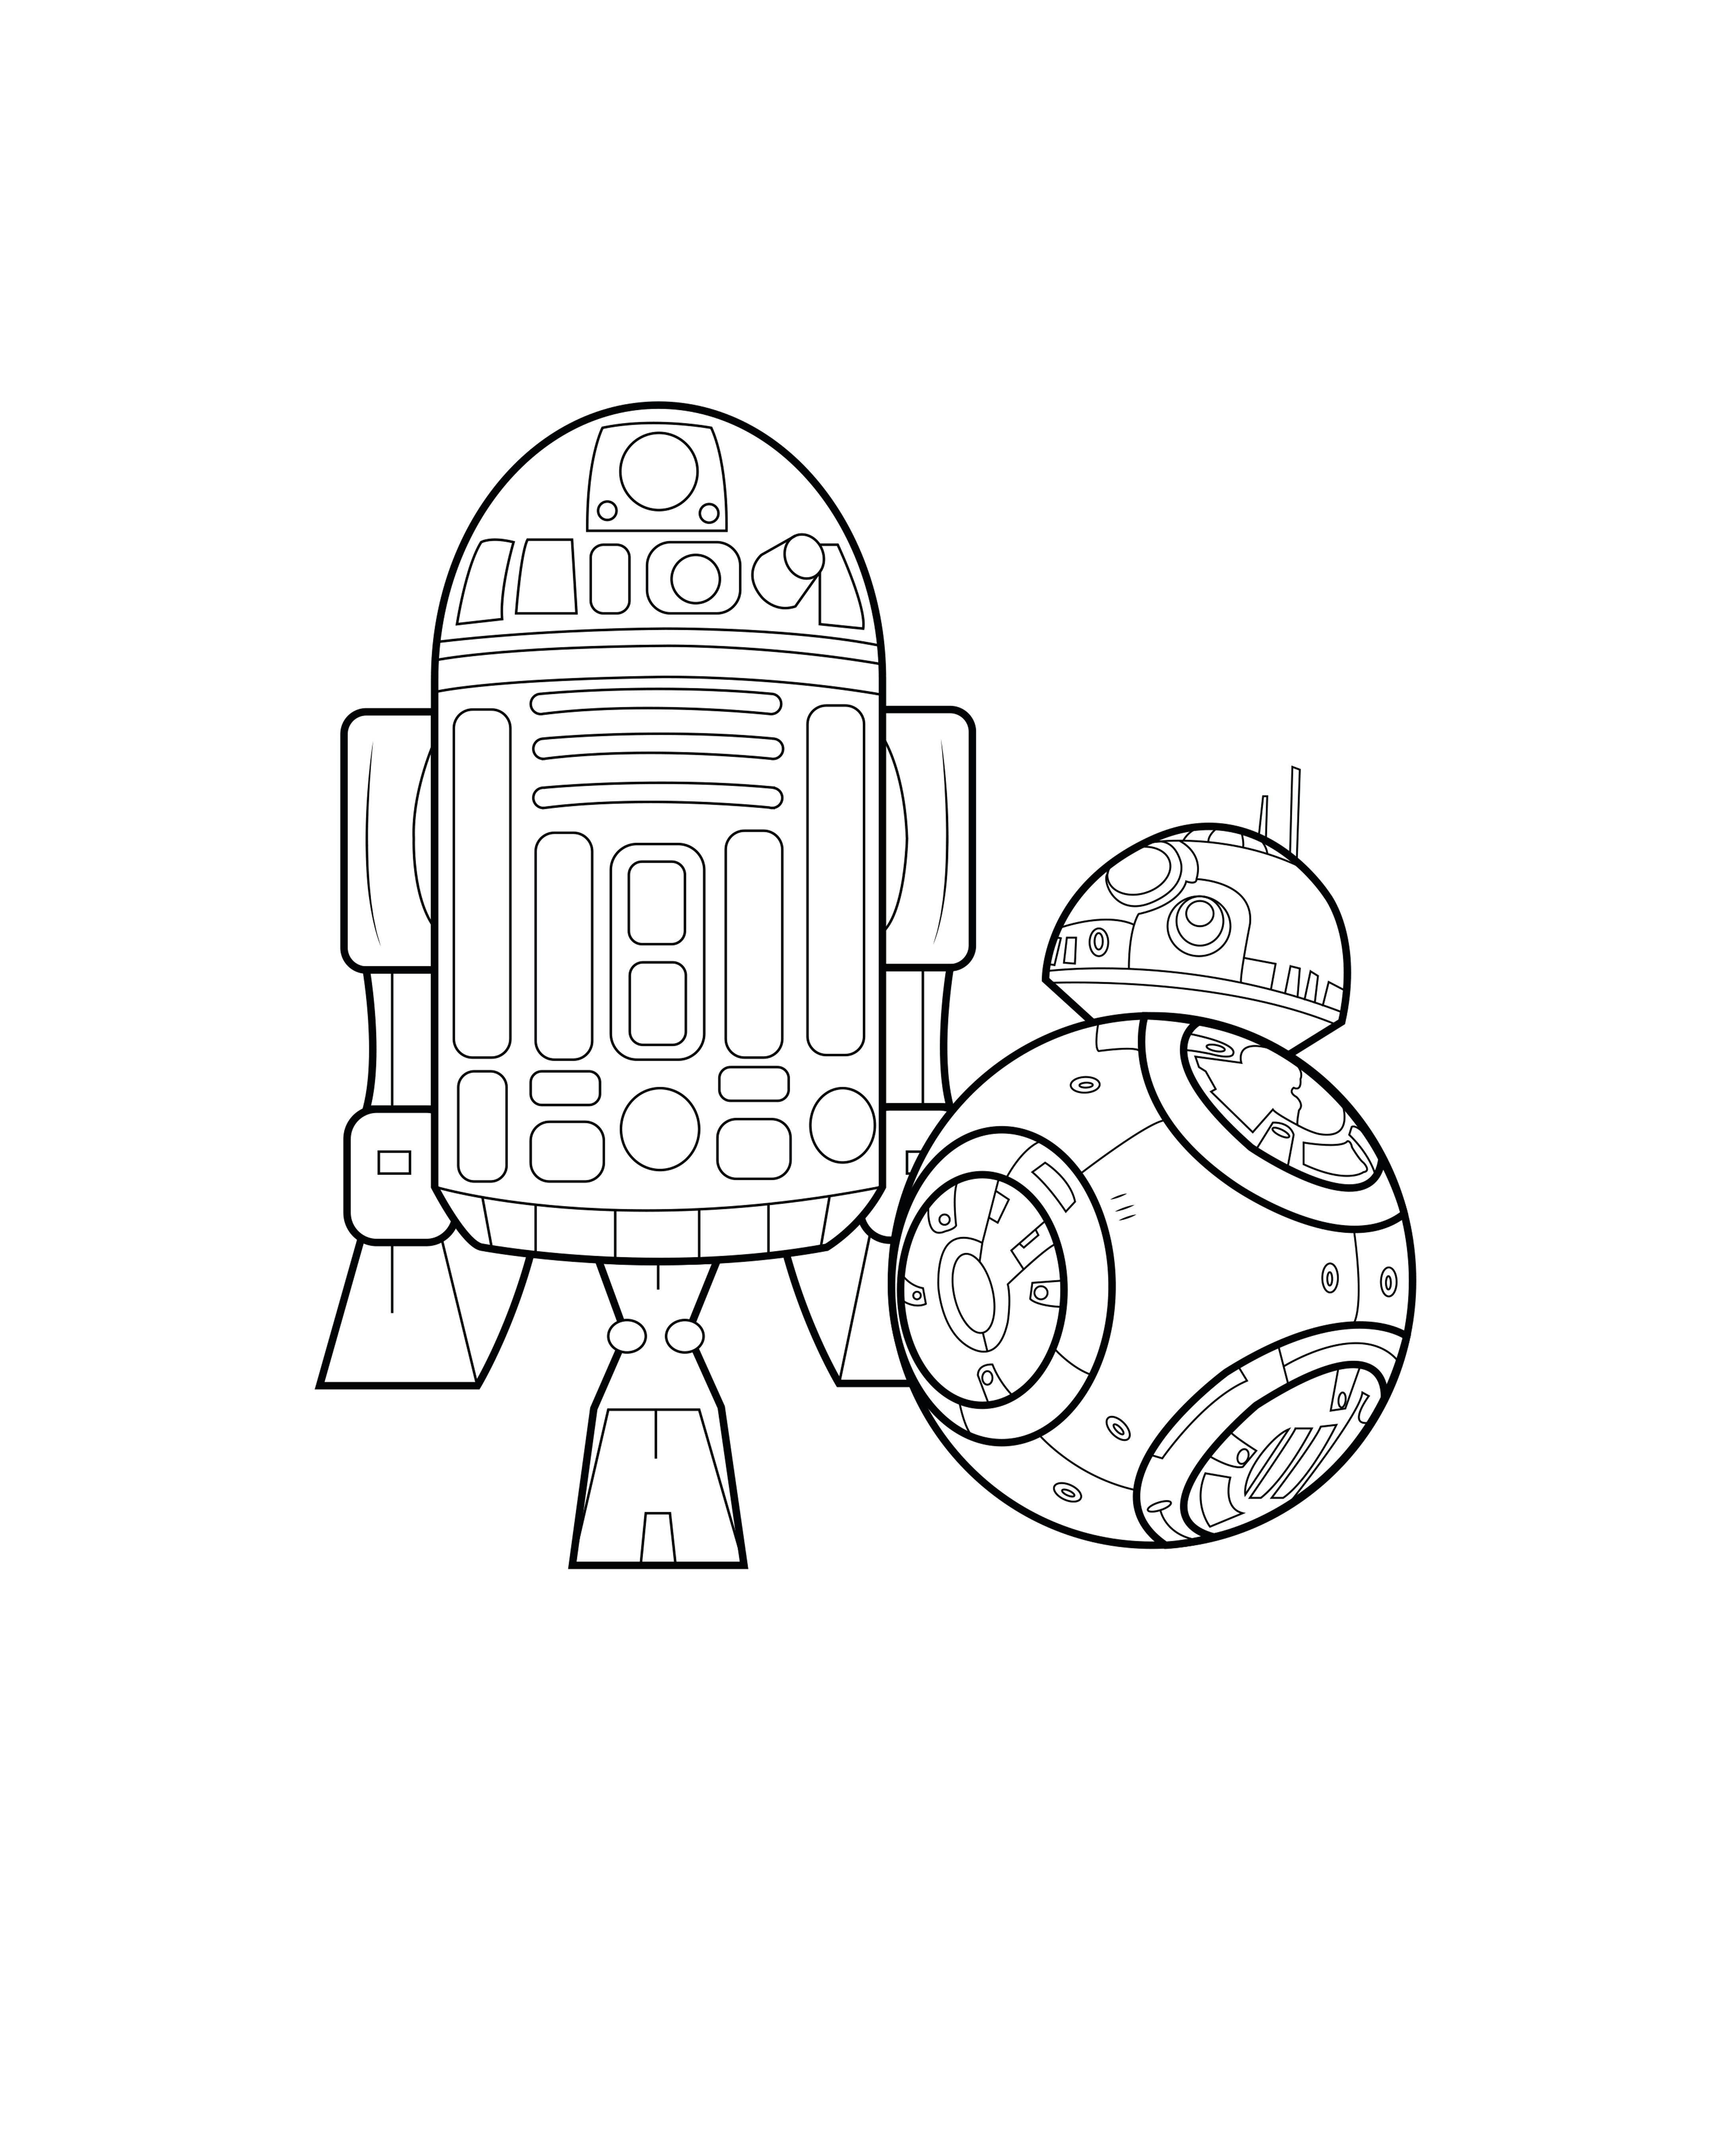 photograph regarding R2d2 Printable identified as R2d2 Coloring Web pages Printable at  Free of charge for